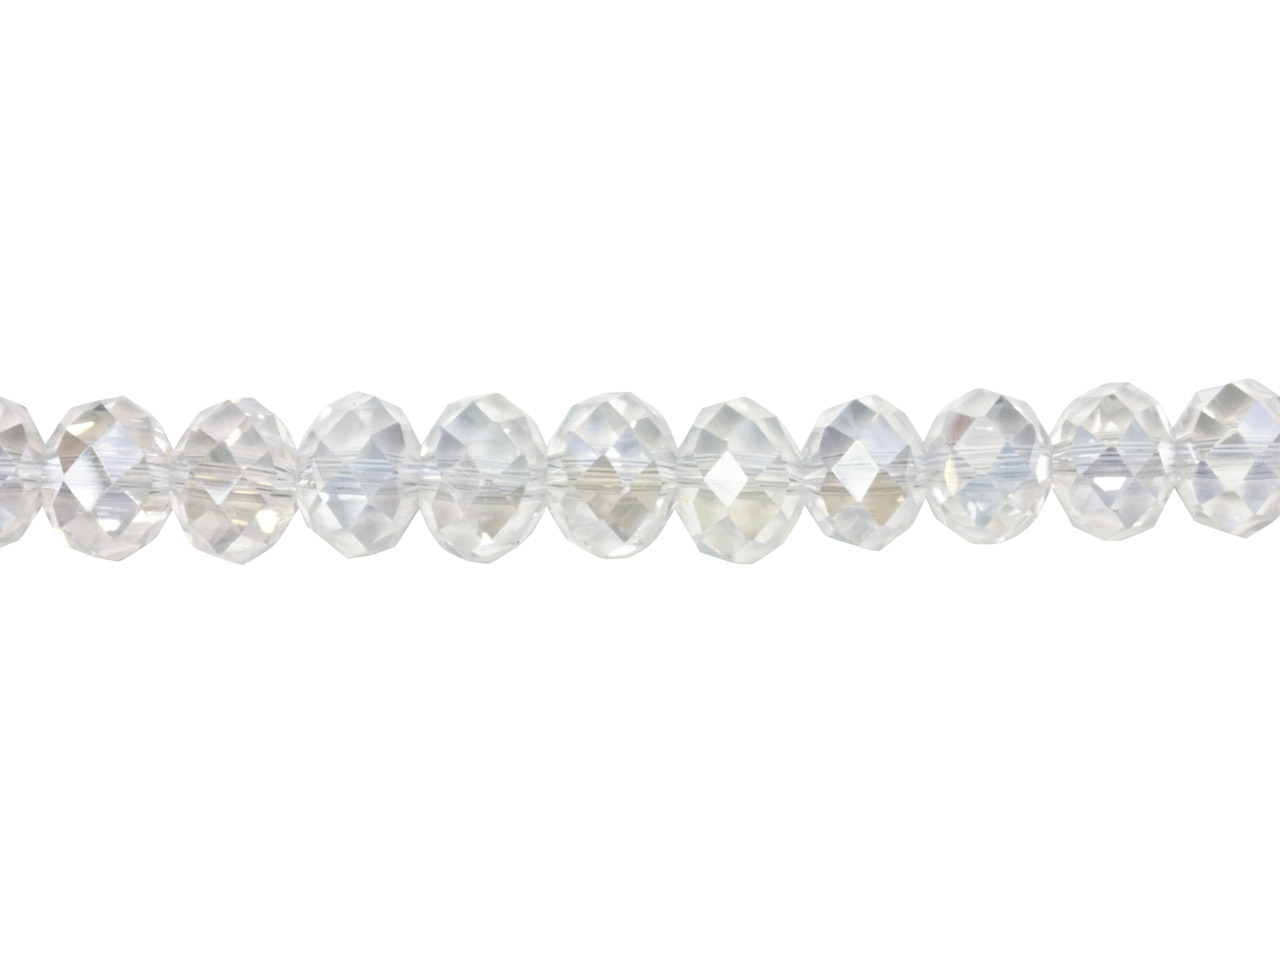 Crystal Faceted Rondelle Clear Ab  8x10mm Beads, 16